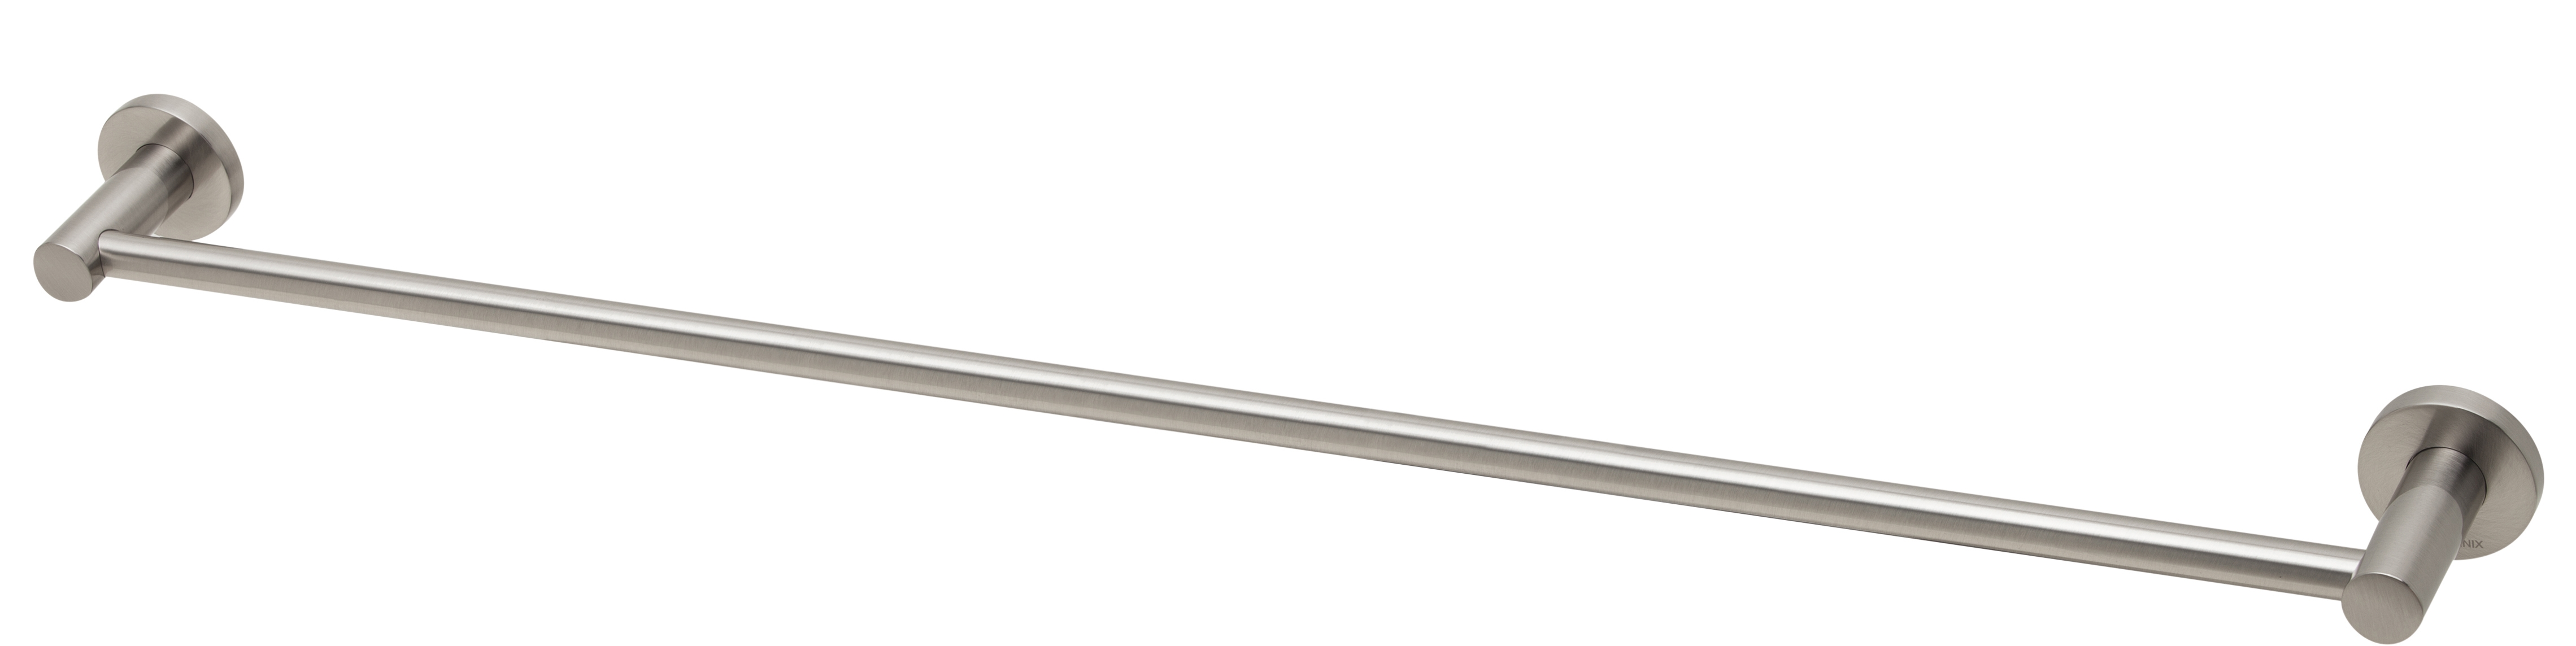 Radii Single 800 Rail brushed nickel